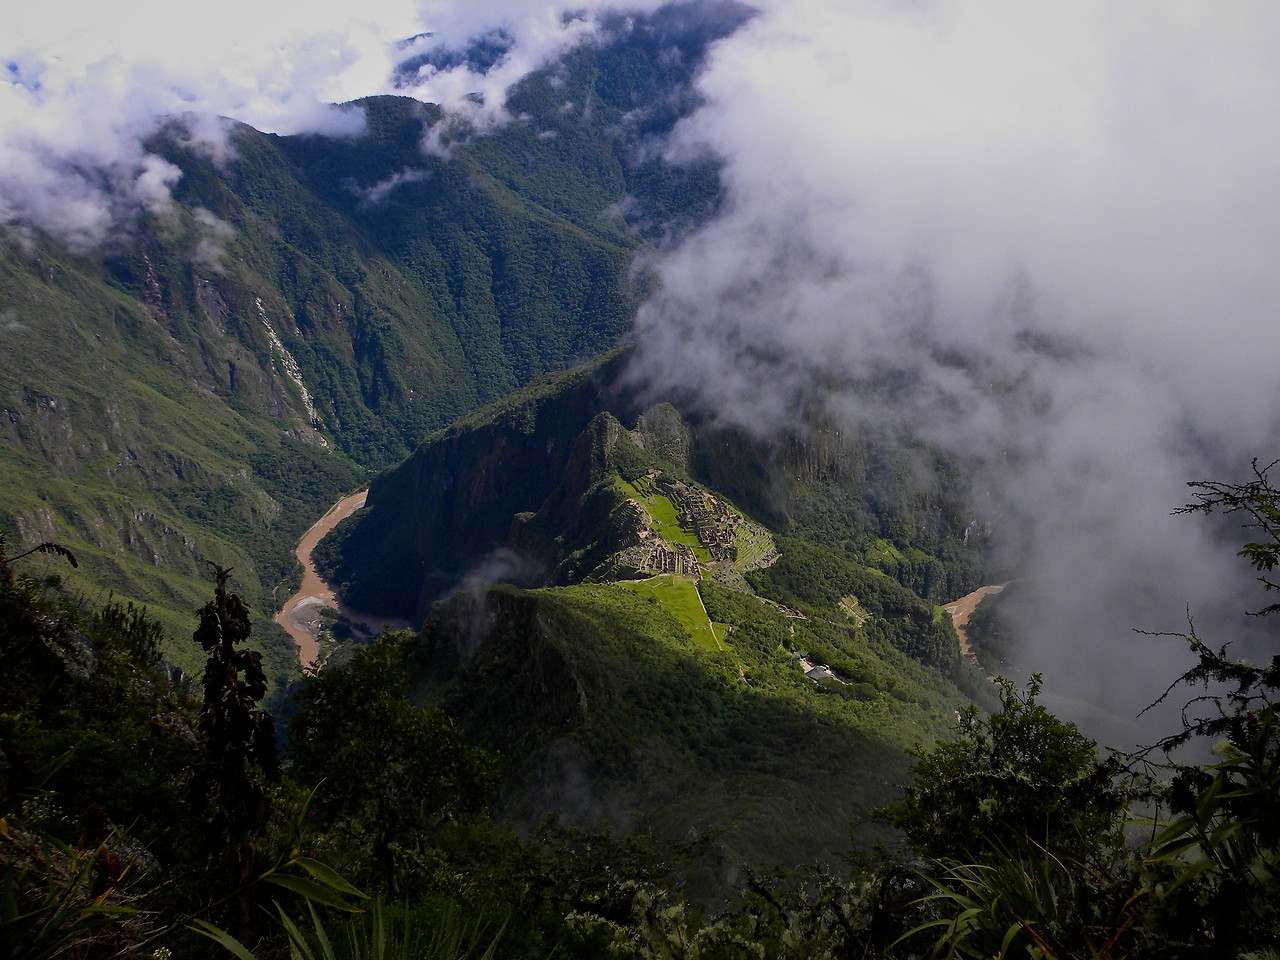 Another view looking down from Machu Picchu the mountain.